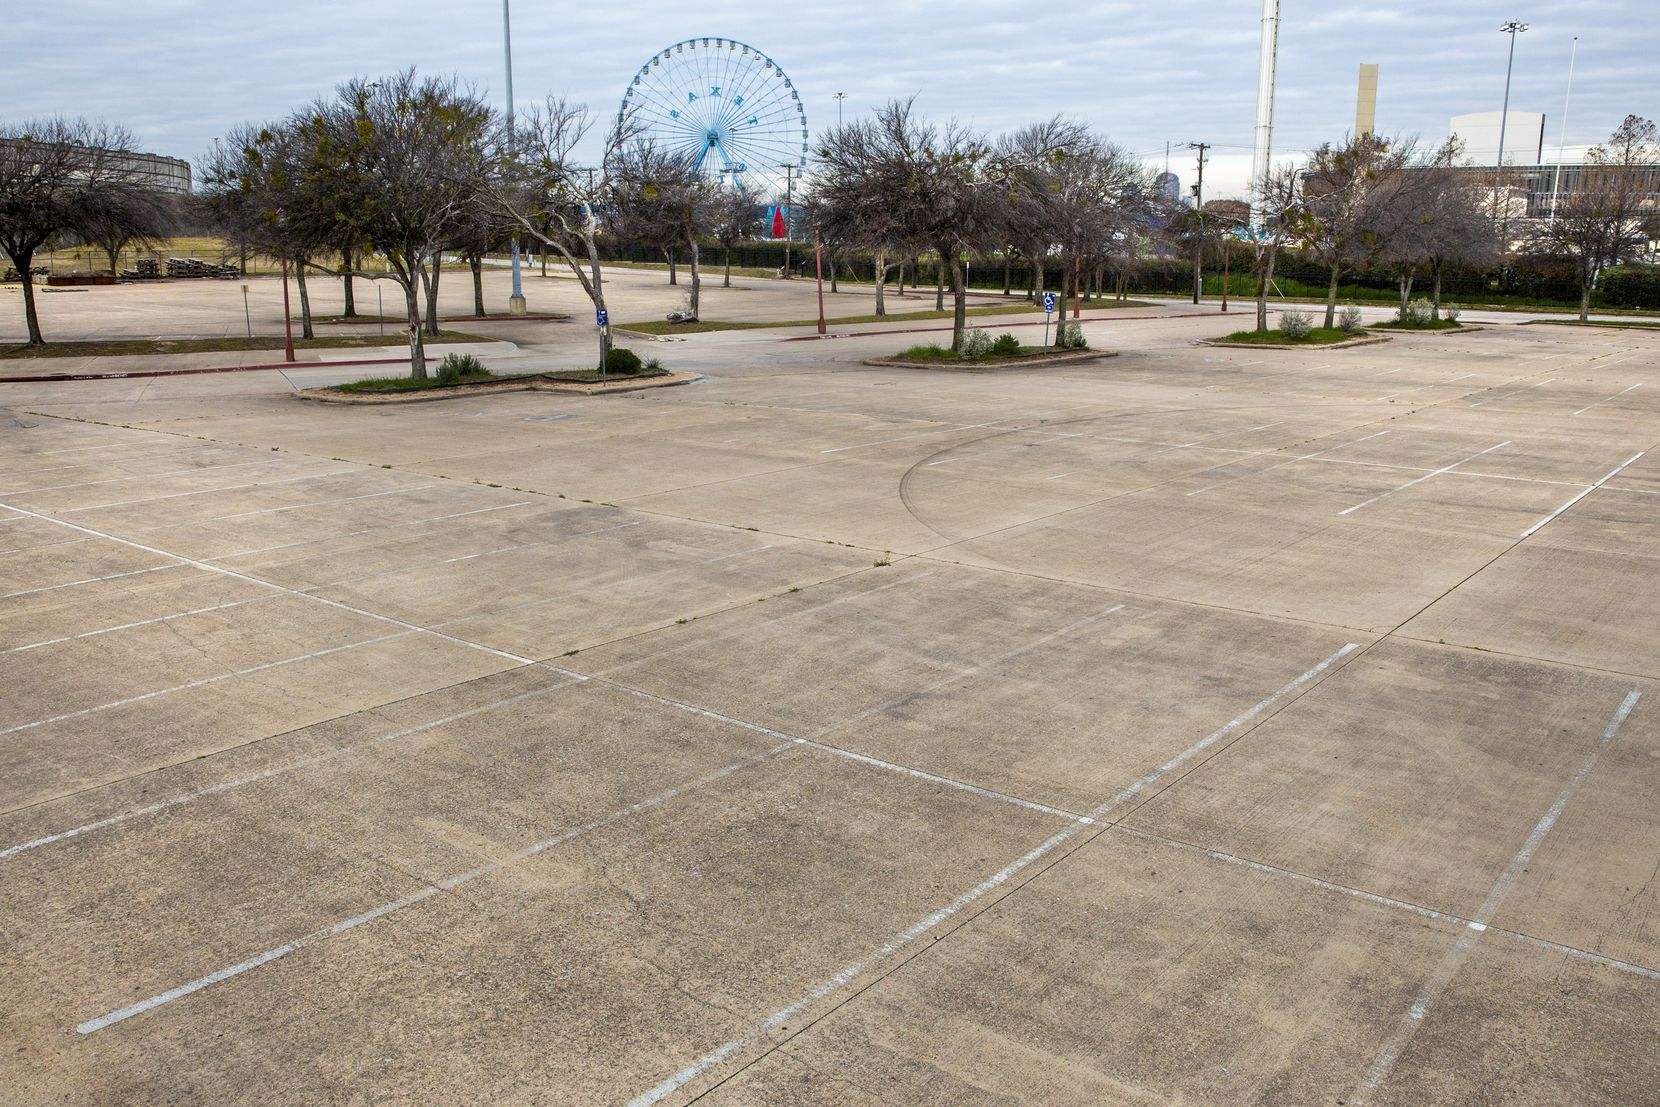 The massive parking lots at the Fitzhugh Avenue end of Fair Park is the site selected for the 14-acre Community Park.